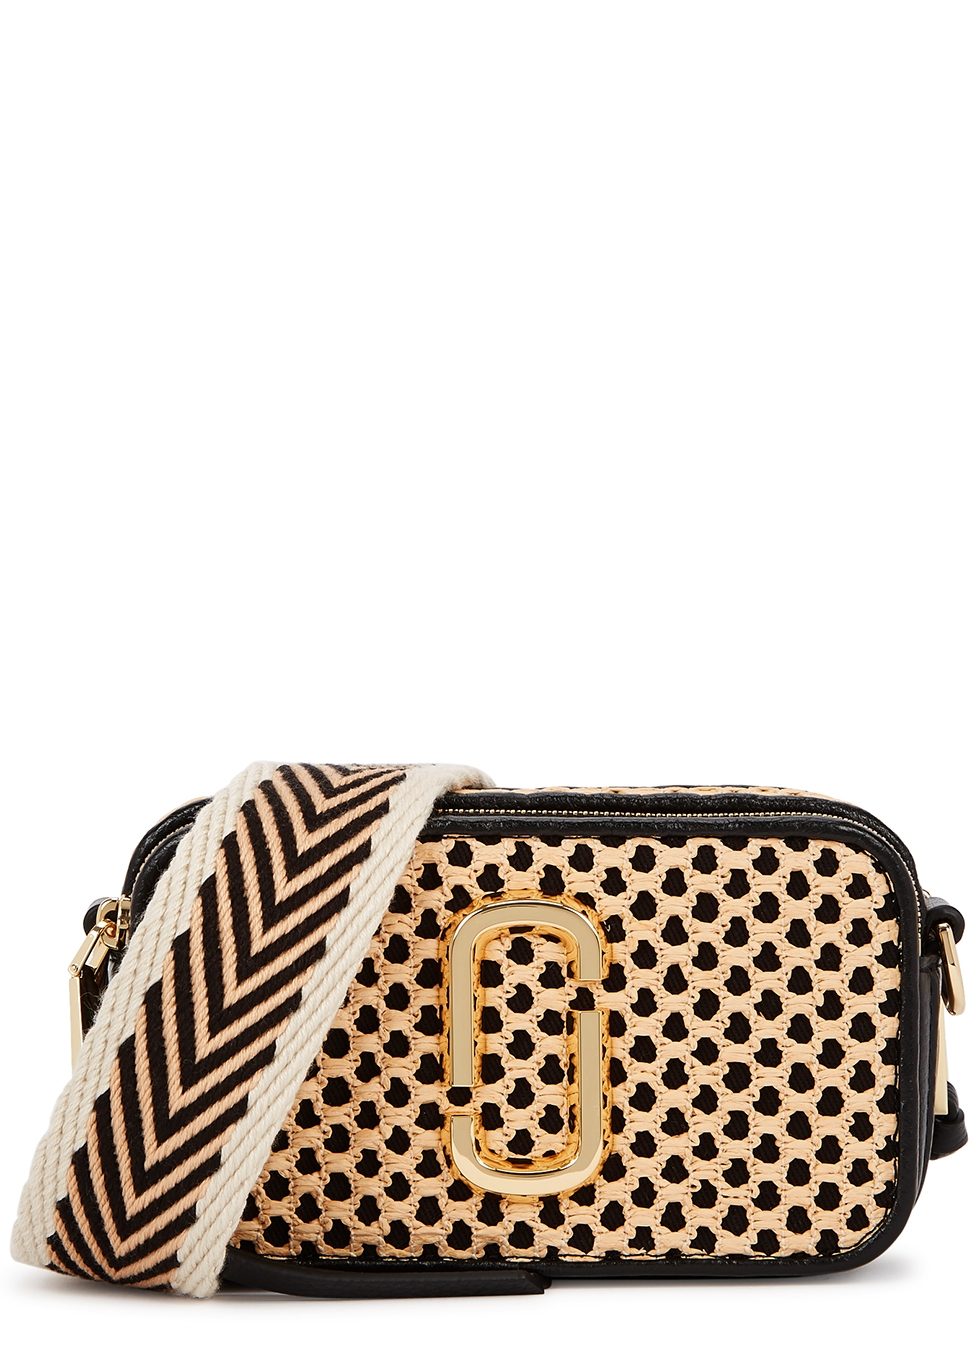 The Snapshot Cane panelled cross-body bag